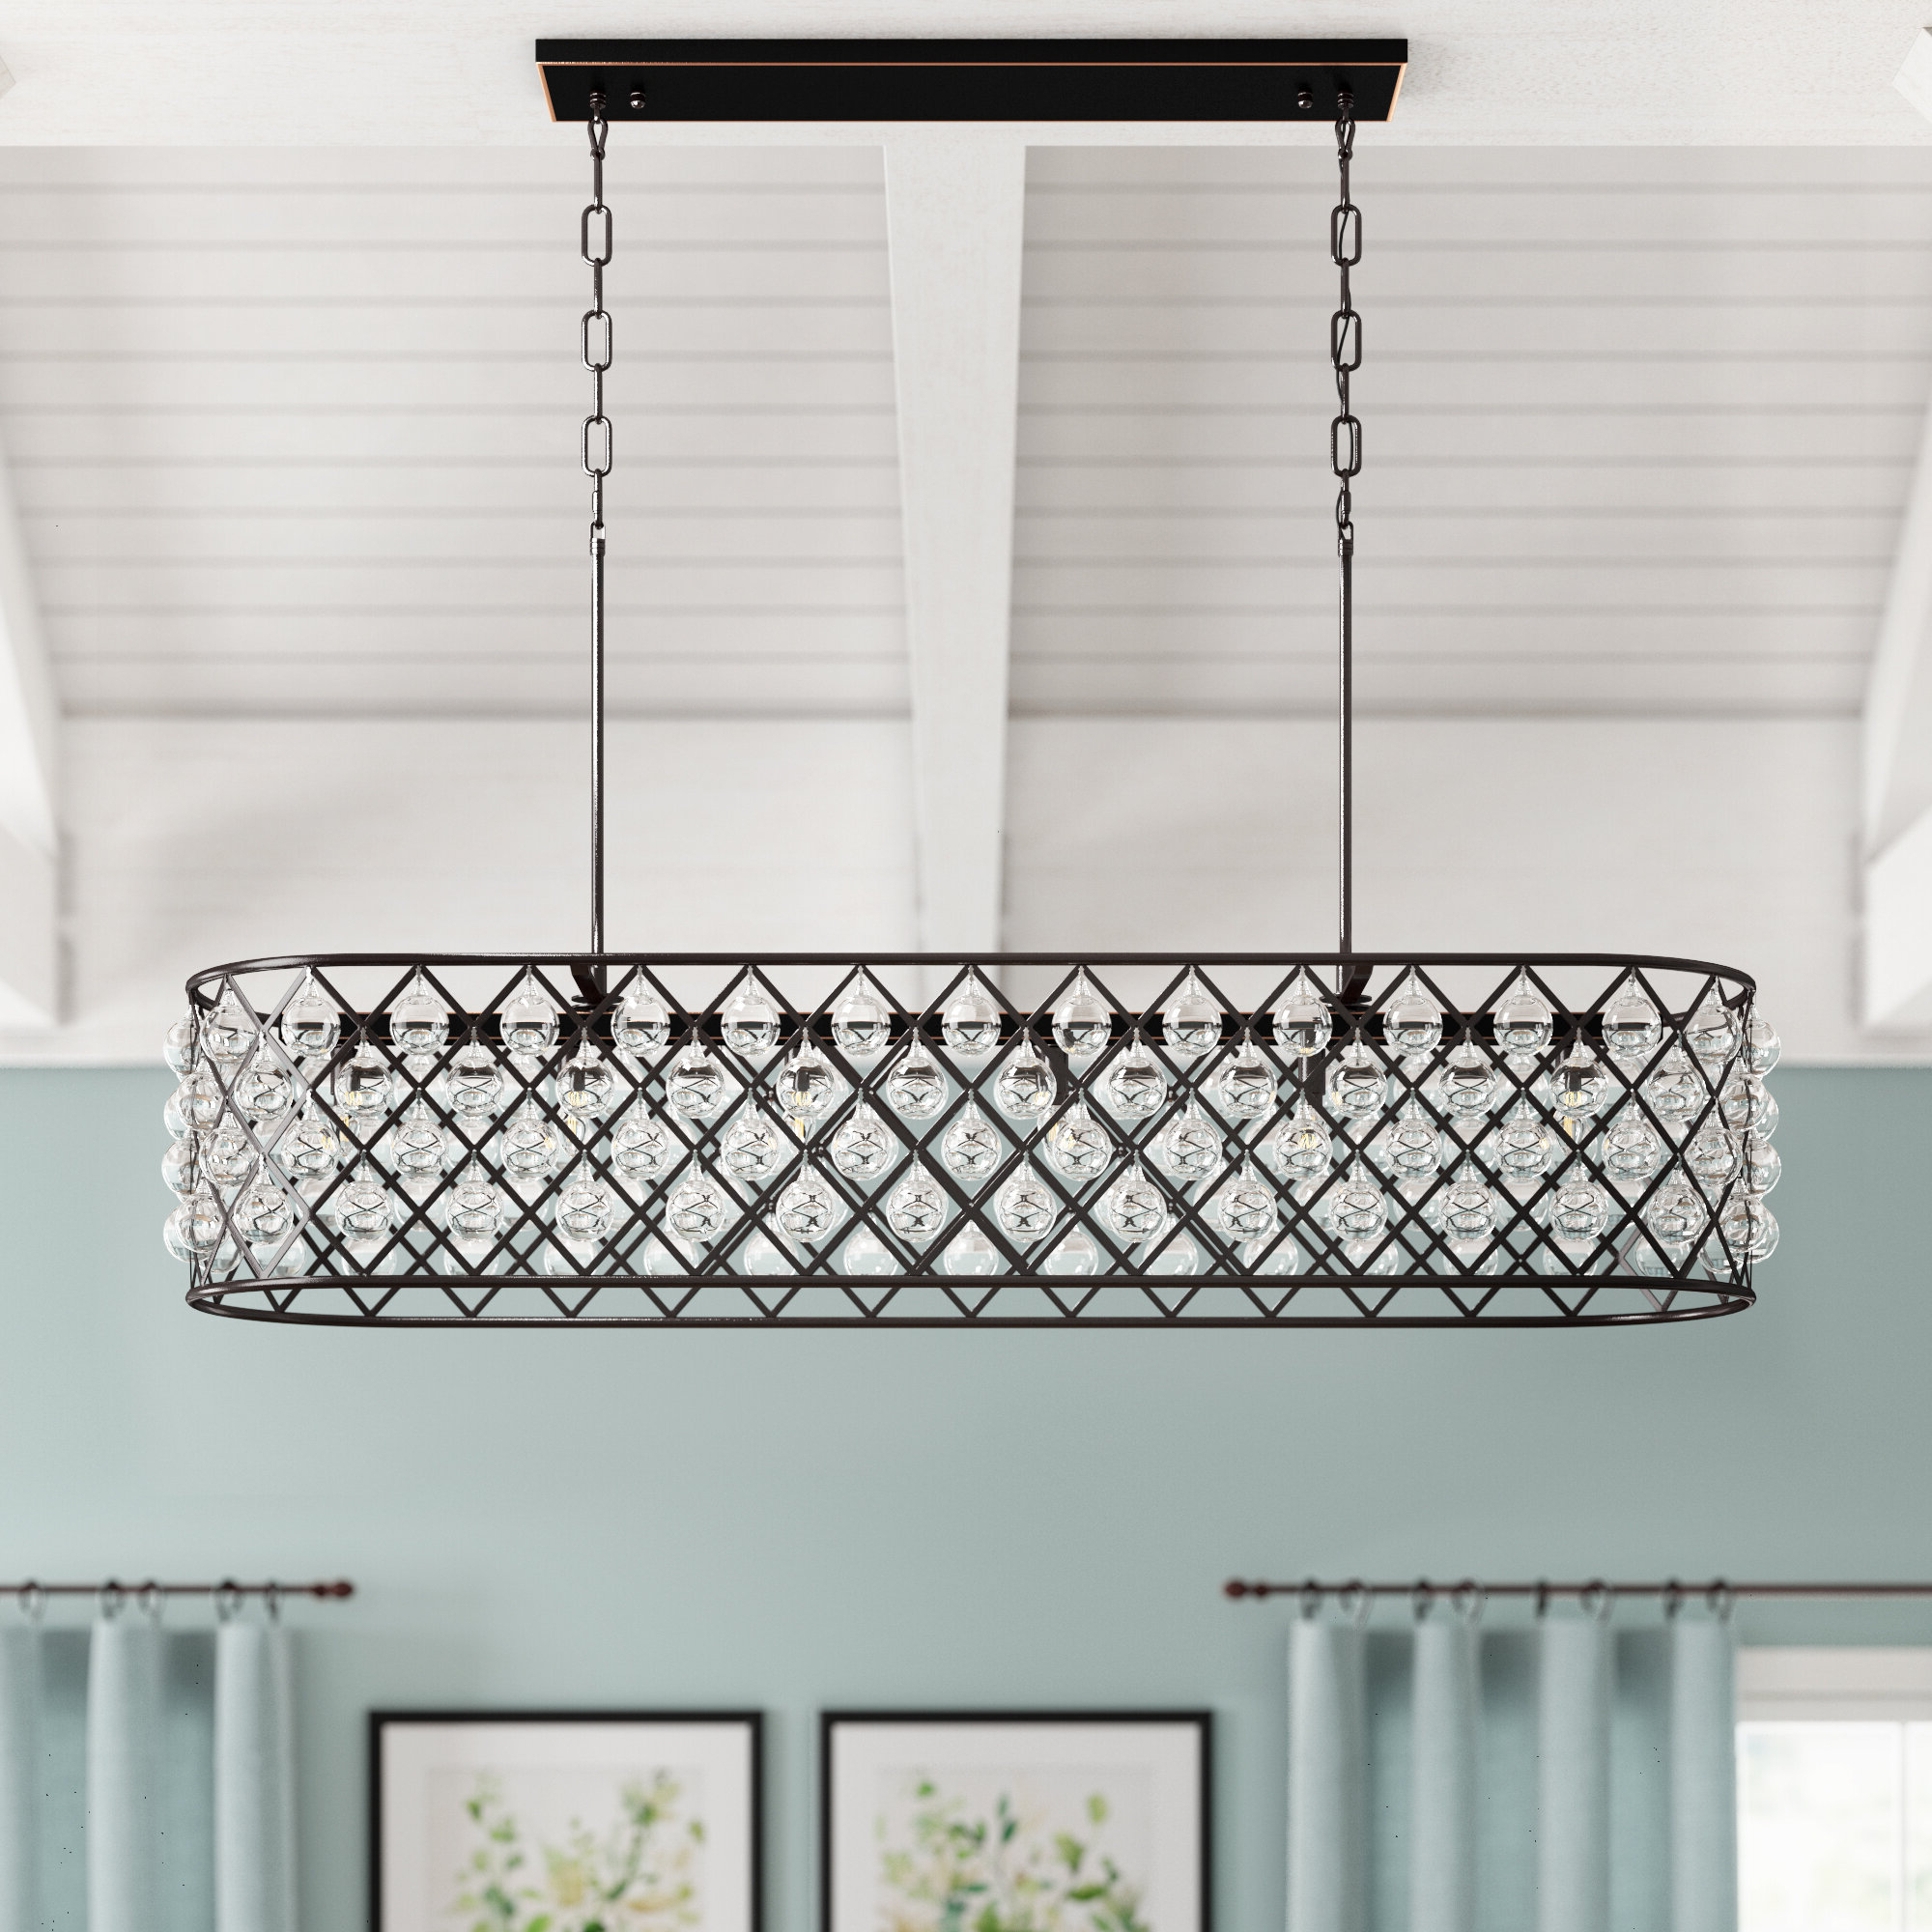 Current Keisha 5 Light Kitchen Island Linear Pendant Pertaining To Delon 5 Light Kitchen Island Linear Pendants (View 4 of 20)